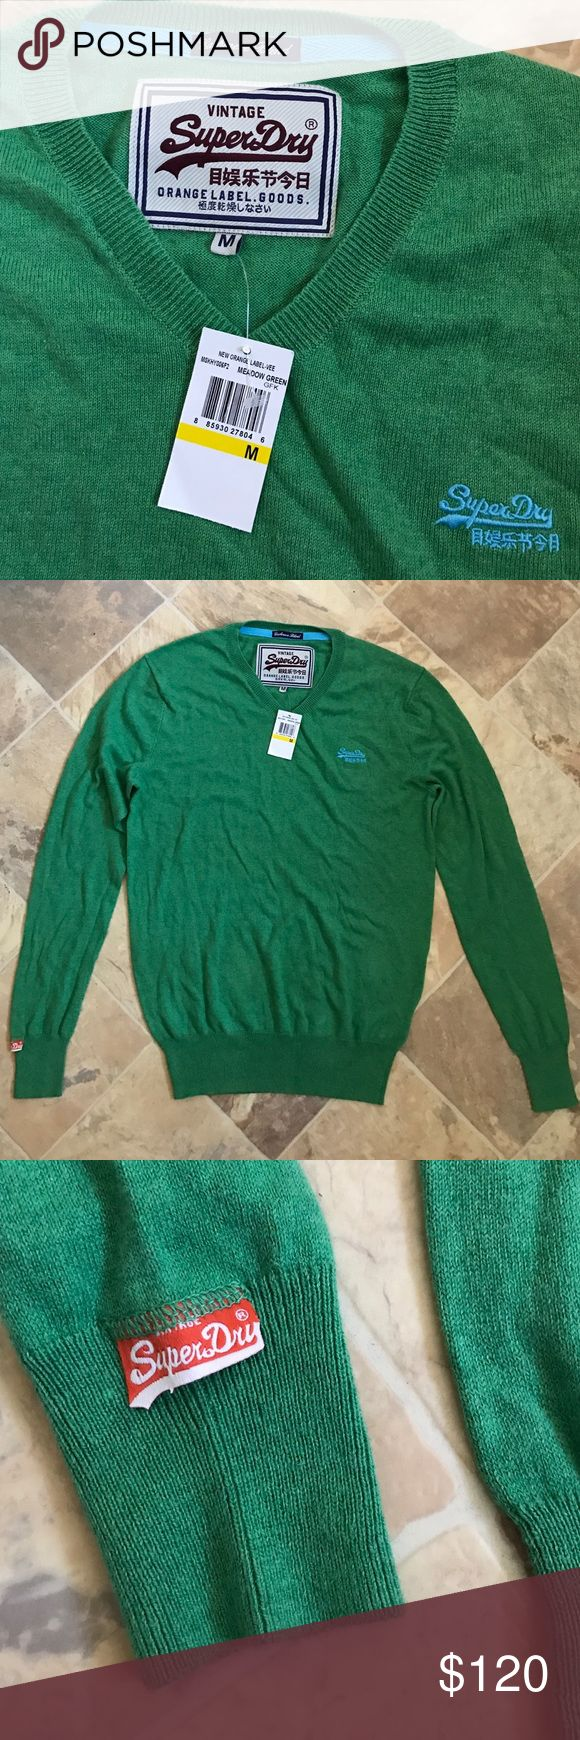 NWT Superdry Men Sweater Cashmere JP Soft Warm New 100% authentic and brand new. $120 original price. The info tag is still attached. Cashmere cotton blend. Not nylon. Nice!! Big sale here!!! Superdry Sweaters Crewneck